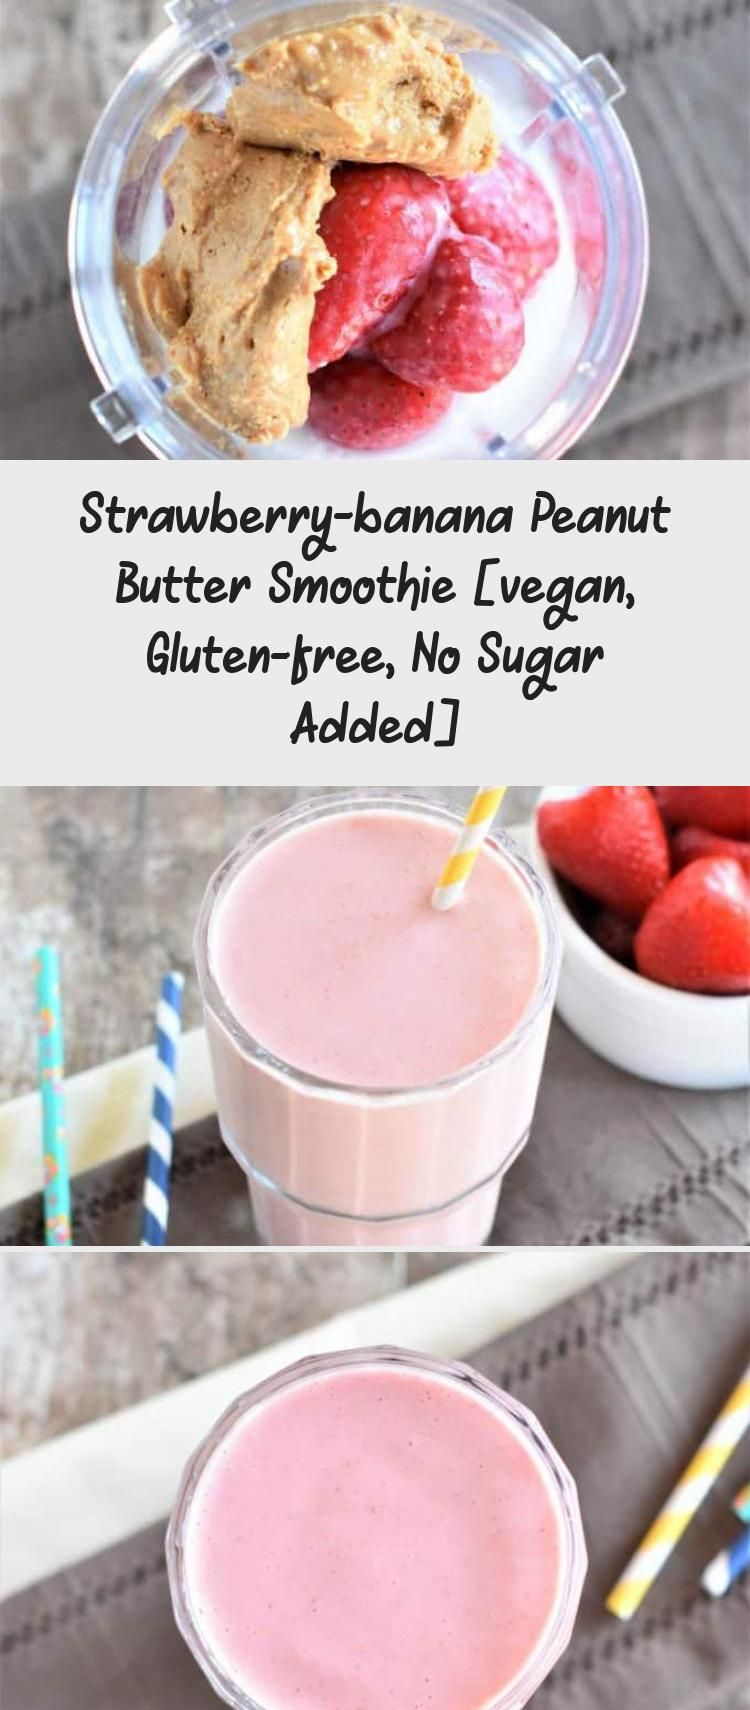 This vegan, no sugar added Strawberry-Banana Peanut Butter Smoothie is a nutritious and delicious way to start your day! #vegan #smoothie #fruitsmoothie #strawberry #strawberrybanana #glutenfree #noaddedsugar #nosugaradded #peanutbutter #meatlessmonday #